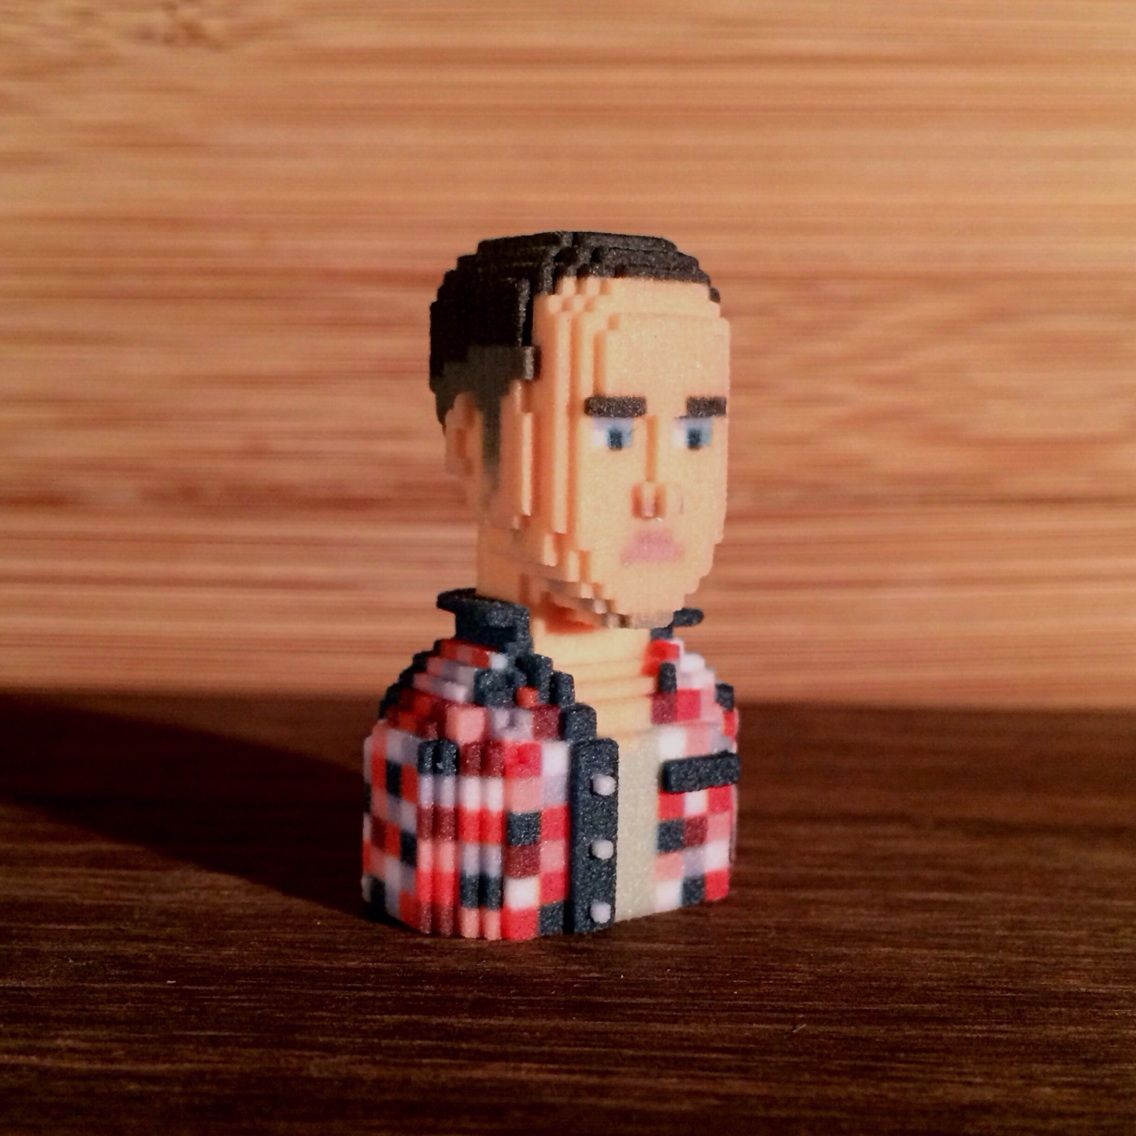 3D printed Avatar portraits by LEBLOX